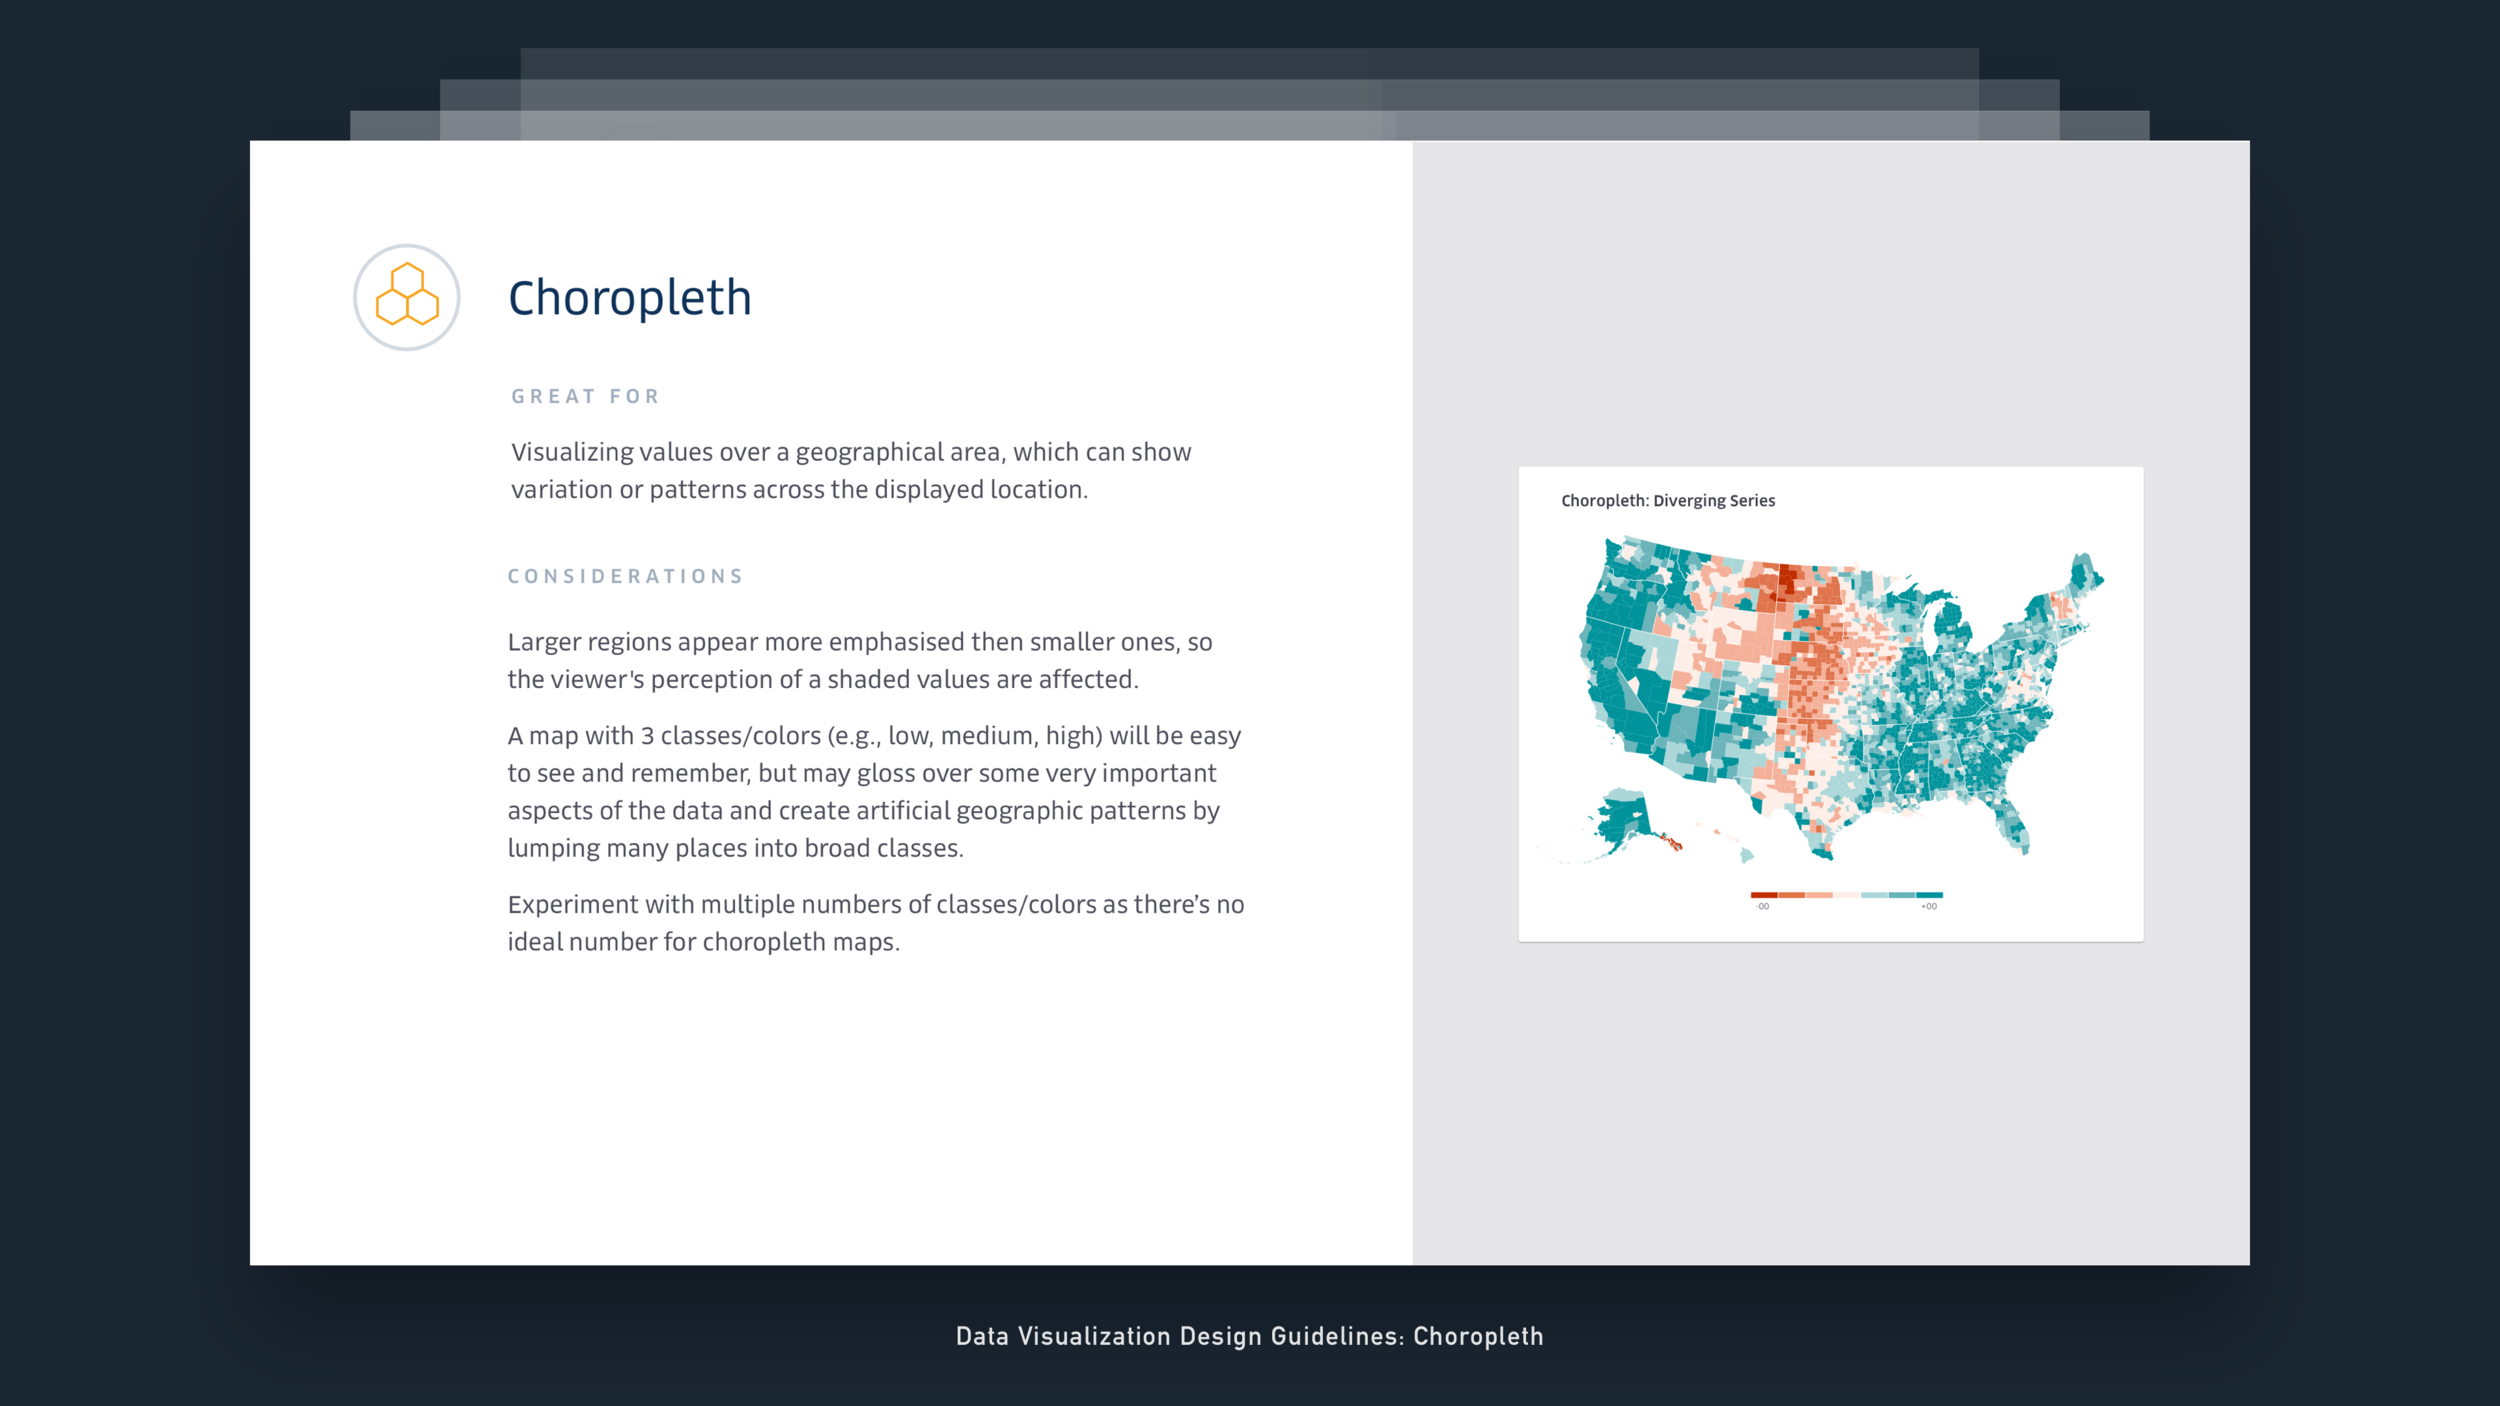 14 - Design Guide Choropleth.png